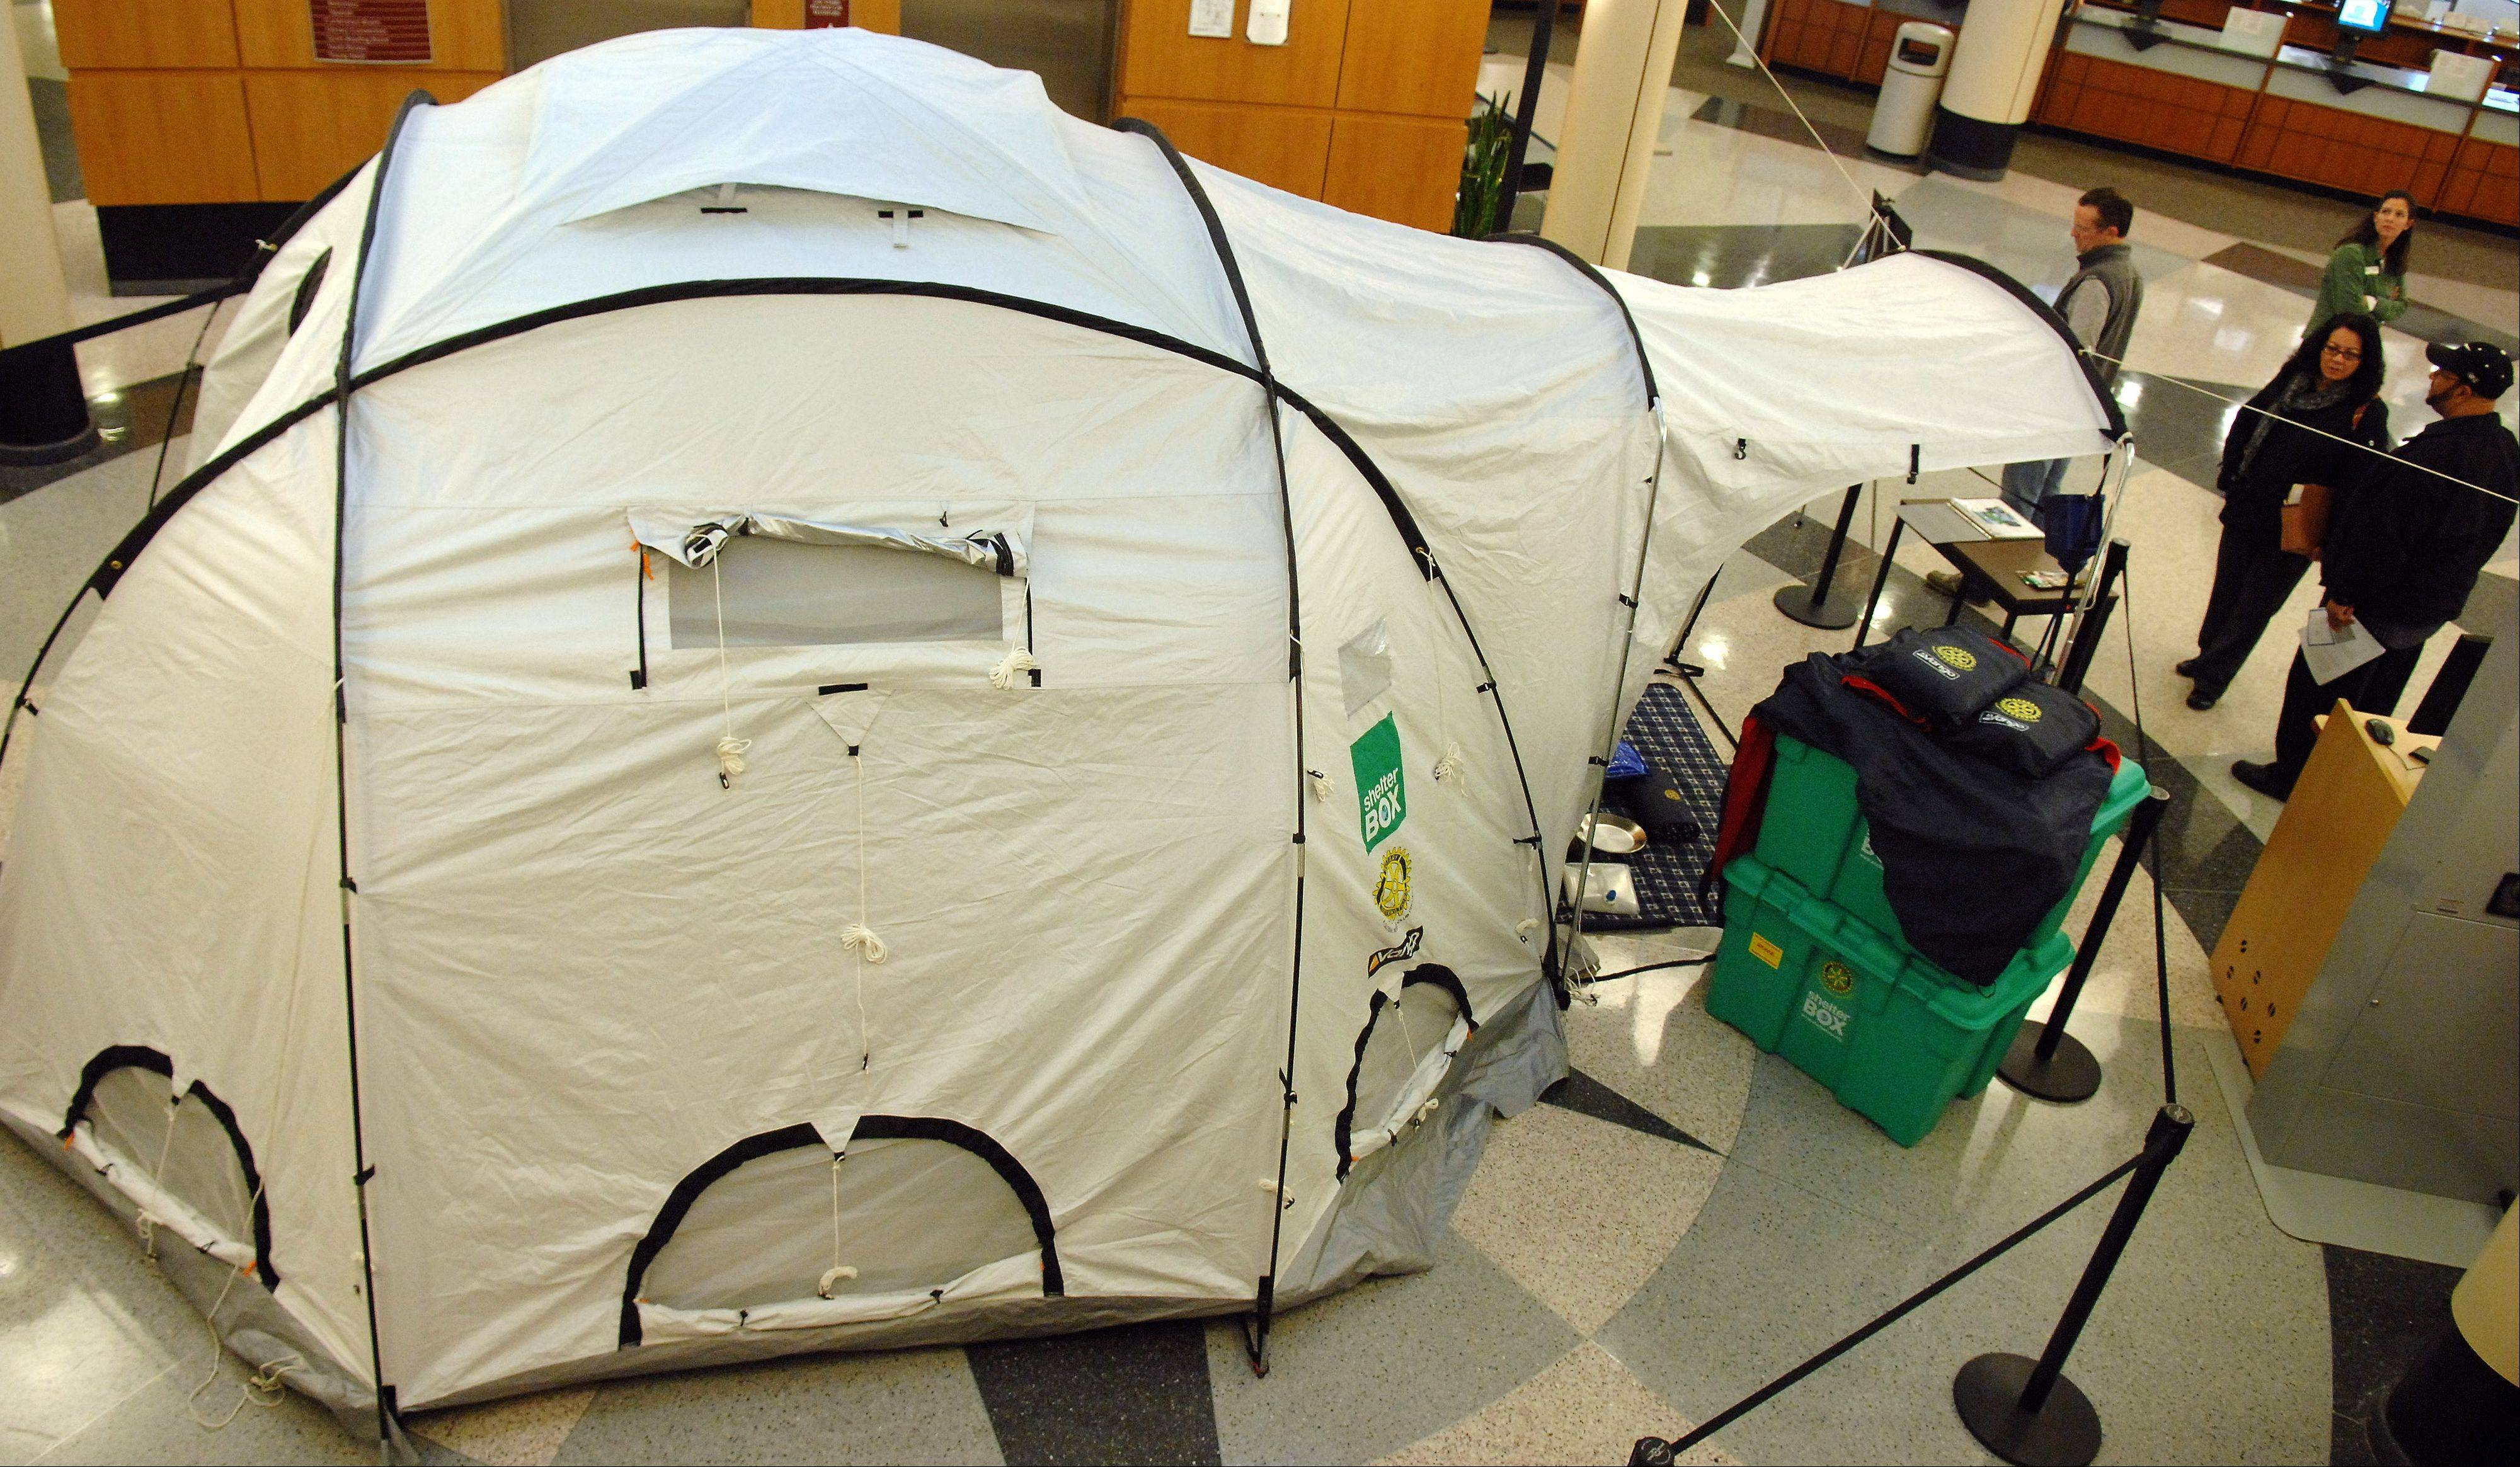 Library goers check out a Shelter Box which includes a 10-person tent & Gail Borden Library showcases Shelter Box survival kit